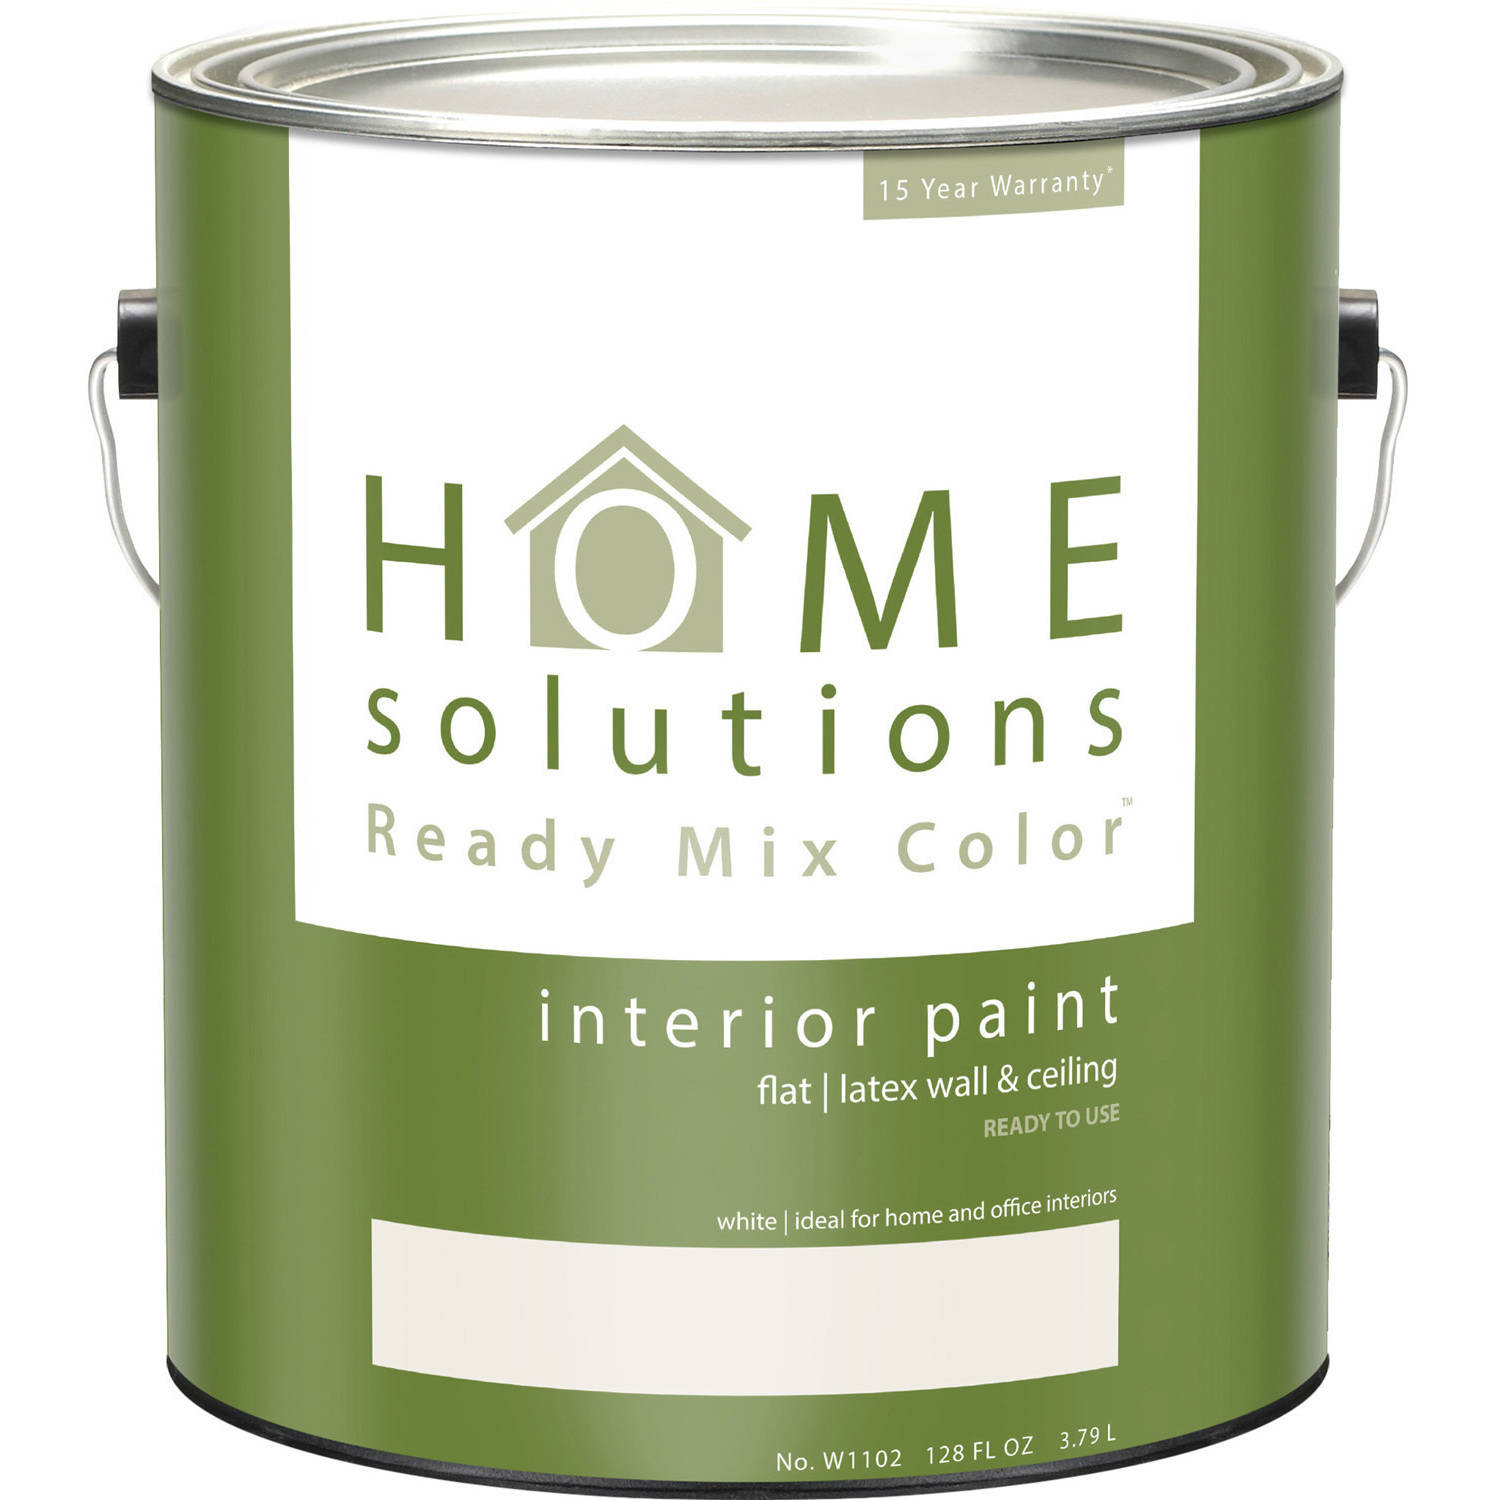 Home Solutions Ready Mix Color Flat White, Gallon